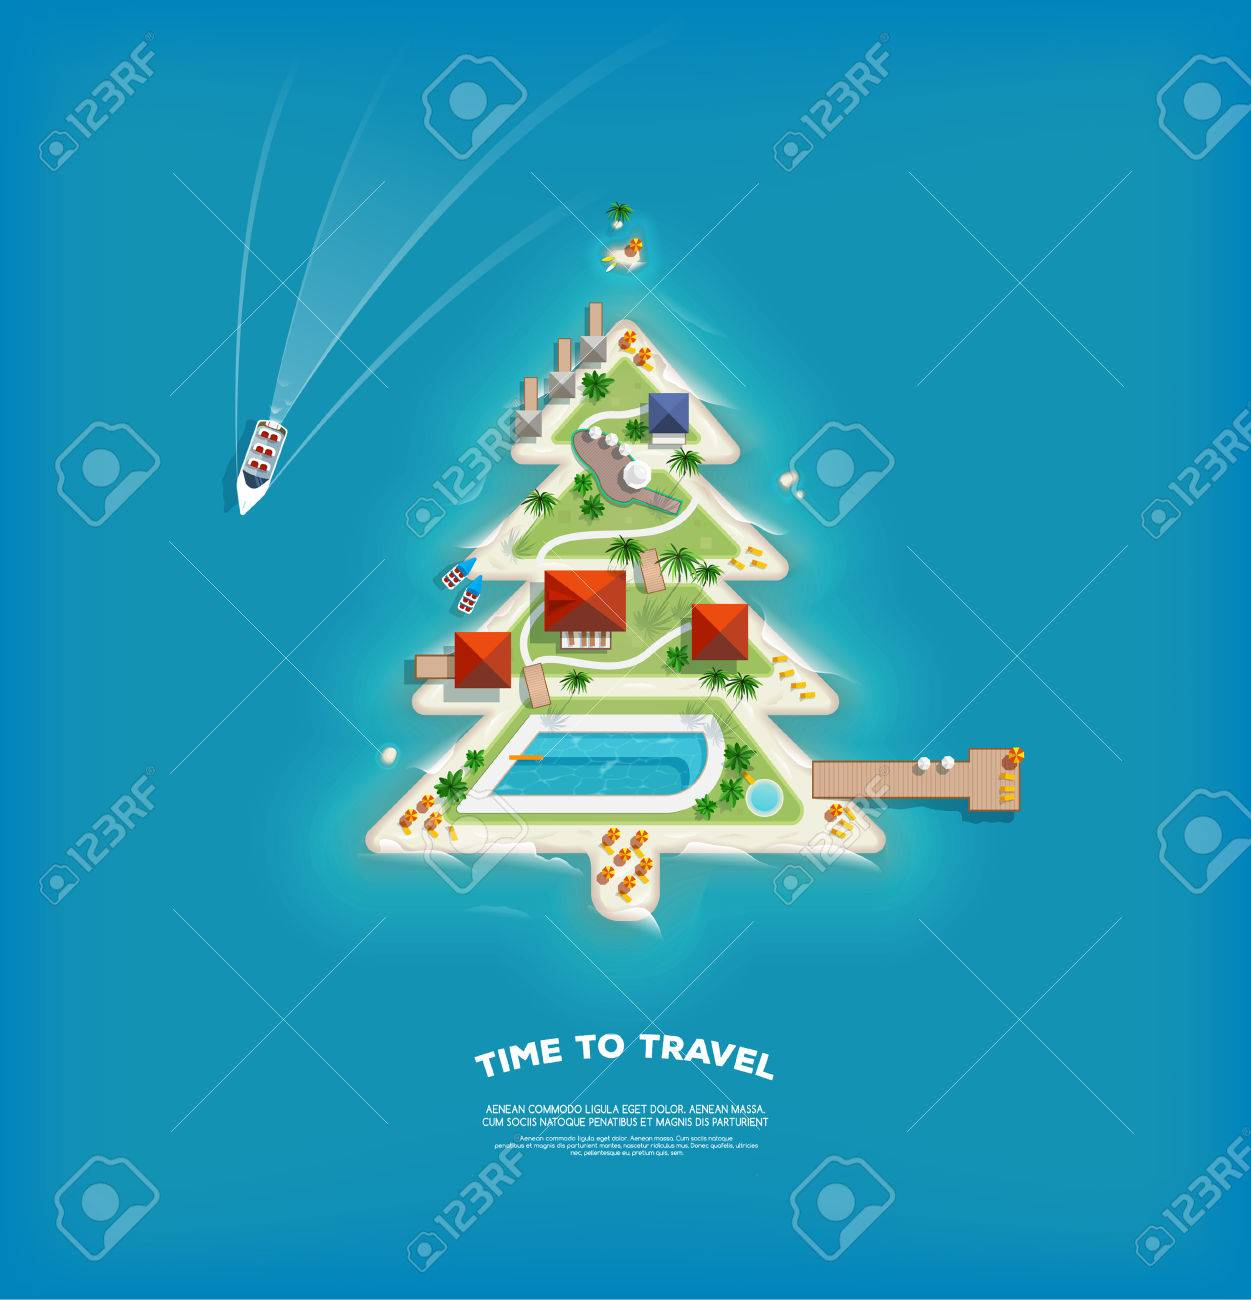 Island Christmas Tree.Creative Poster With Island In The Form Of A Christmas Tree